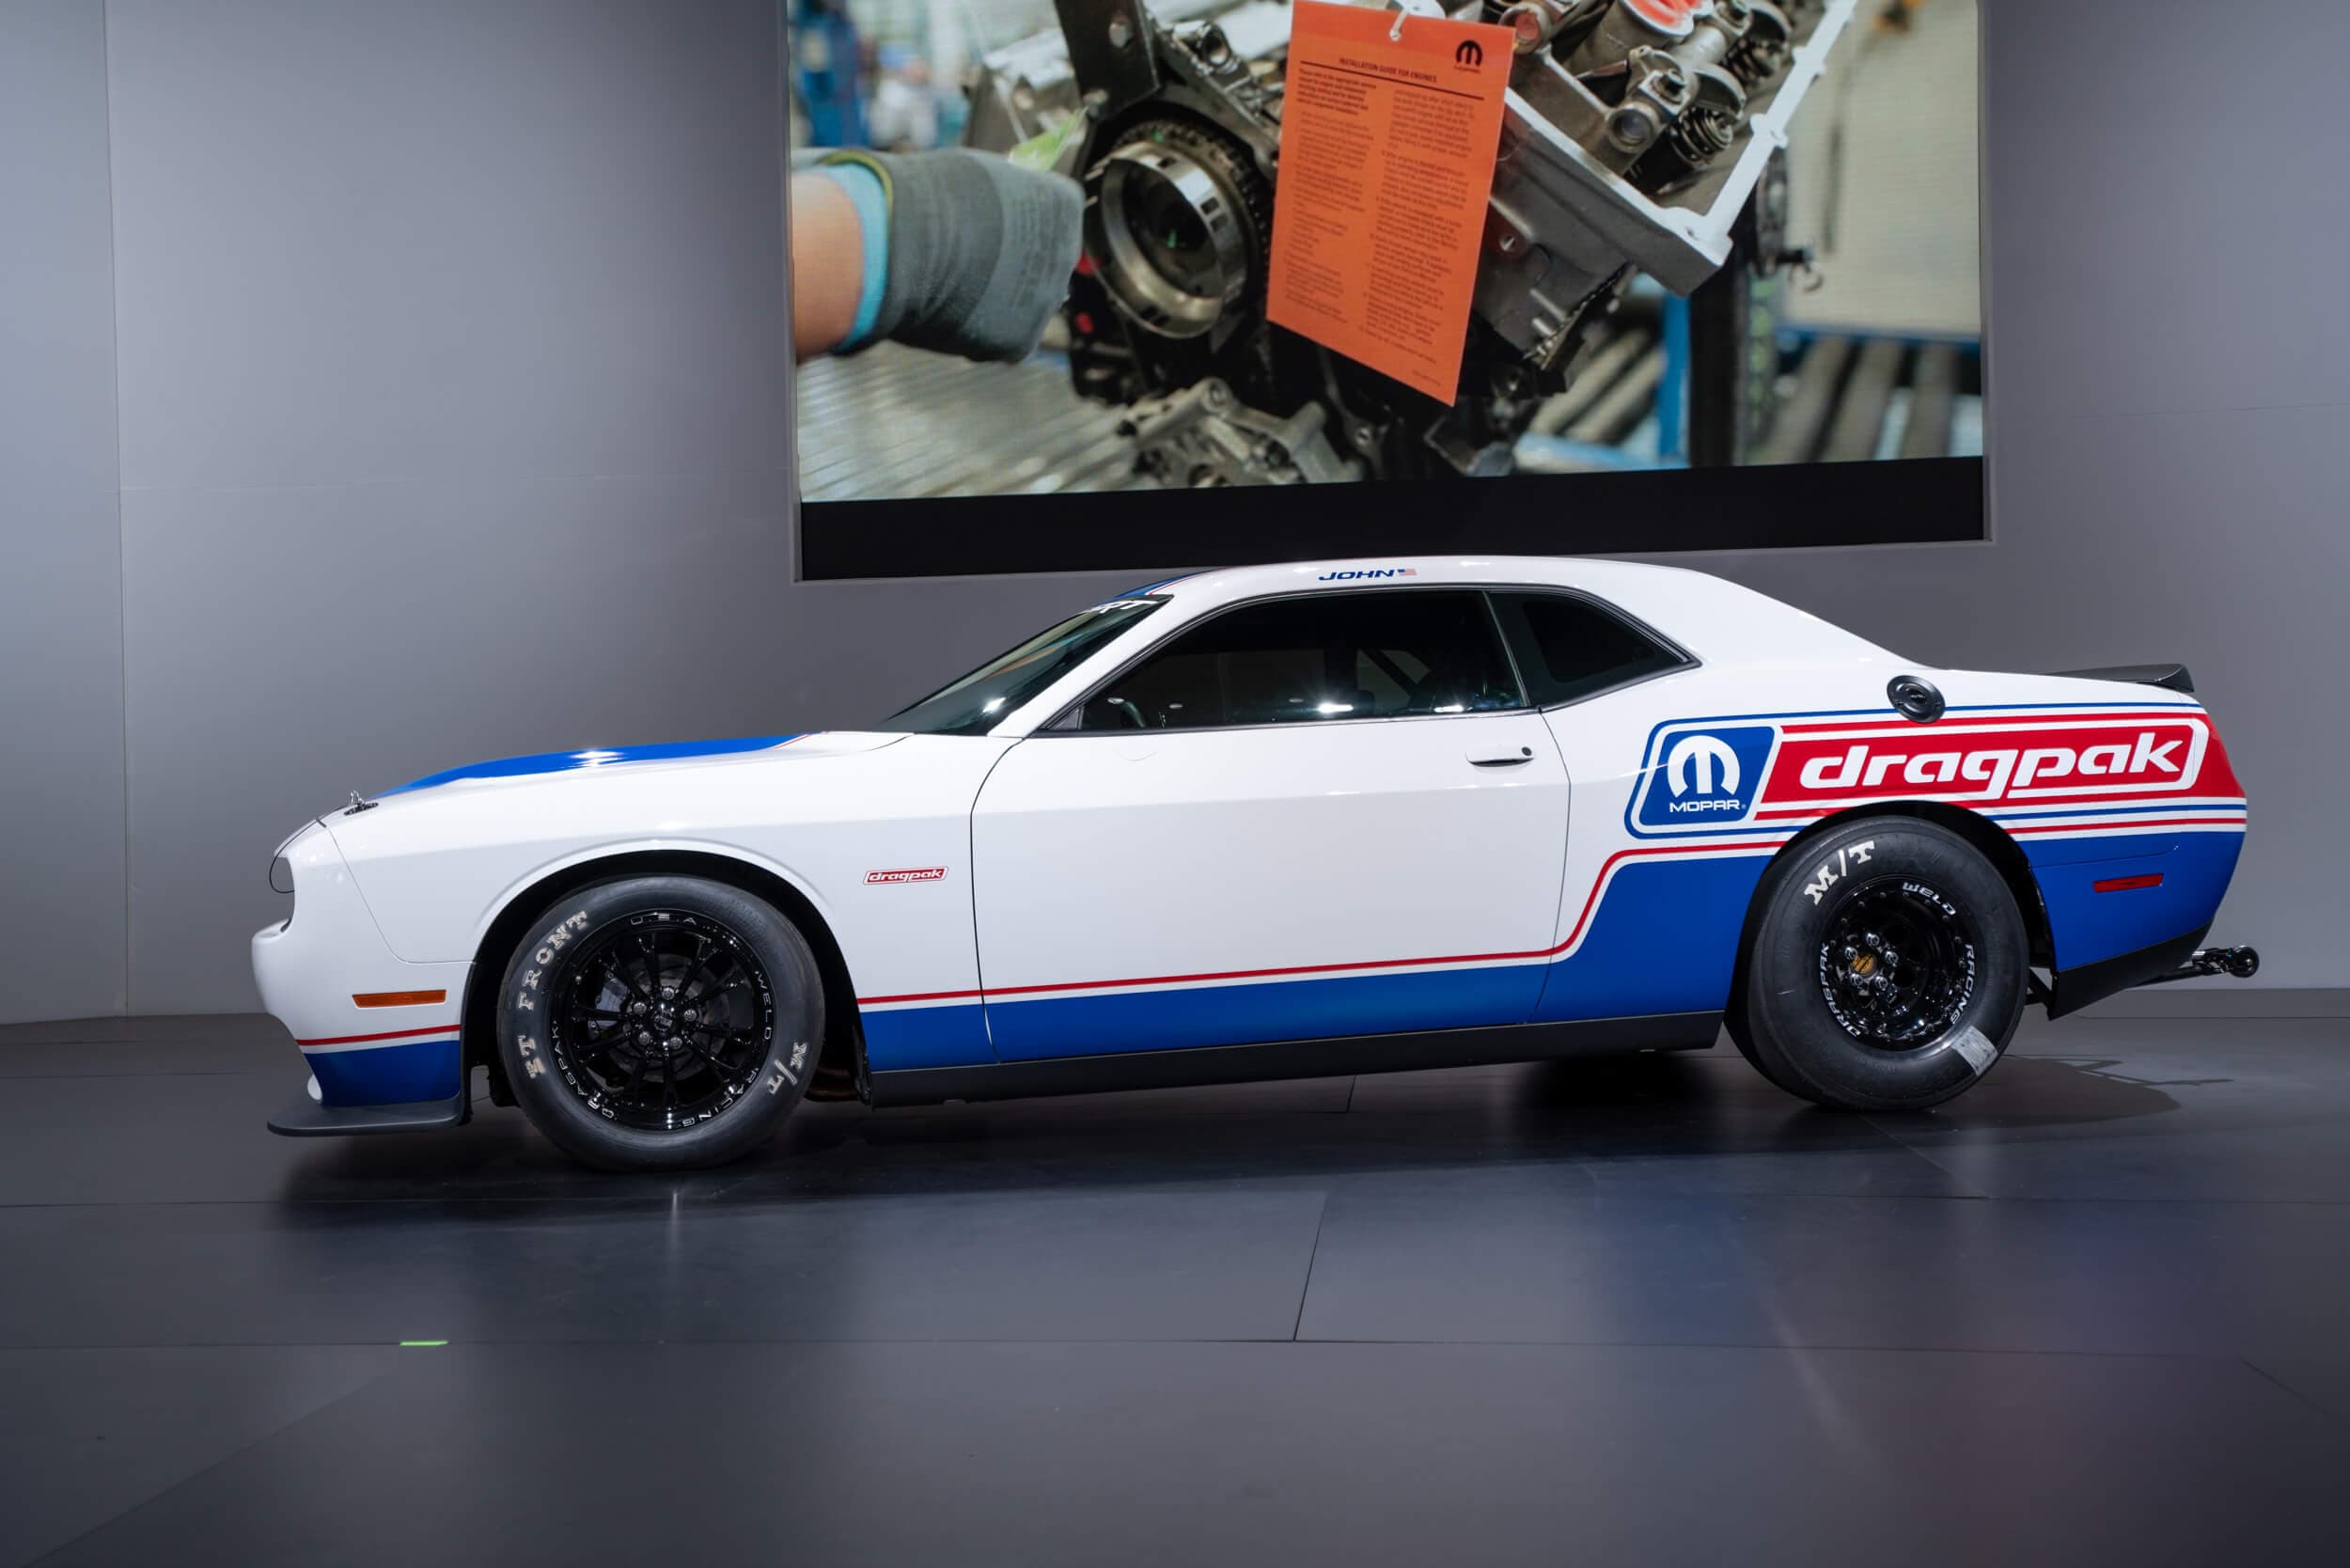 The Dodge Challenger Drag Pack is prepped at the factory to slay at the strip